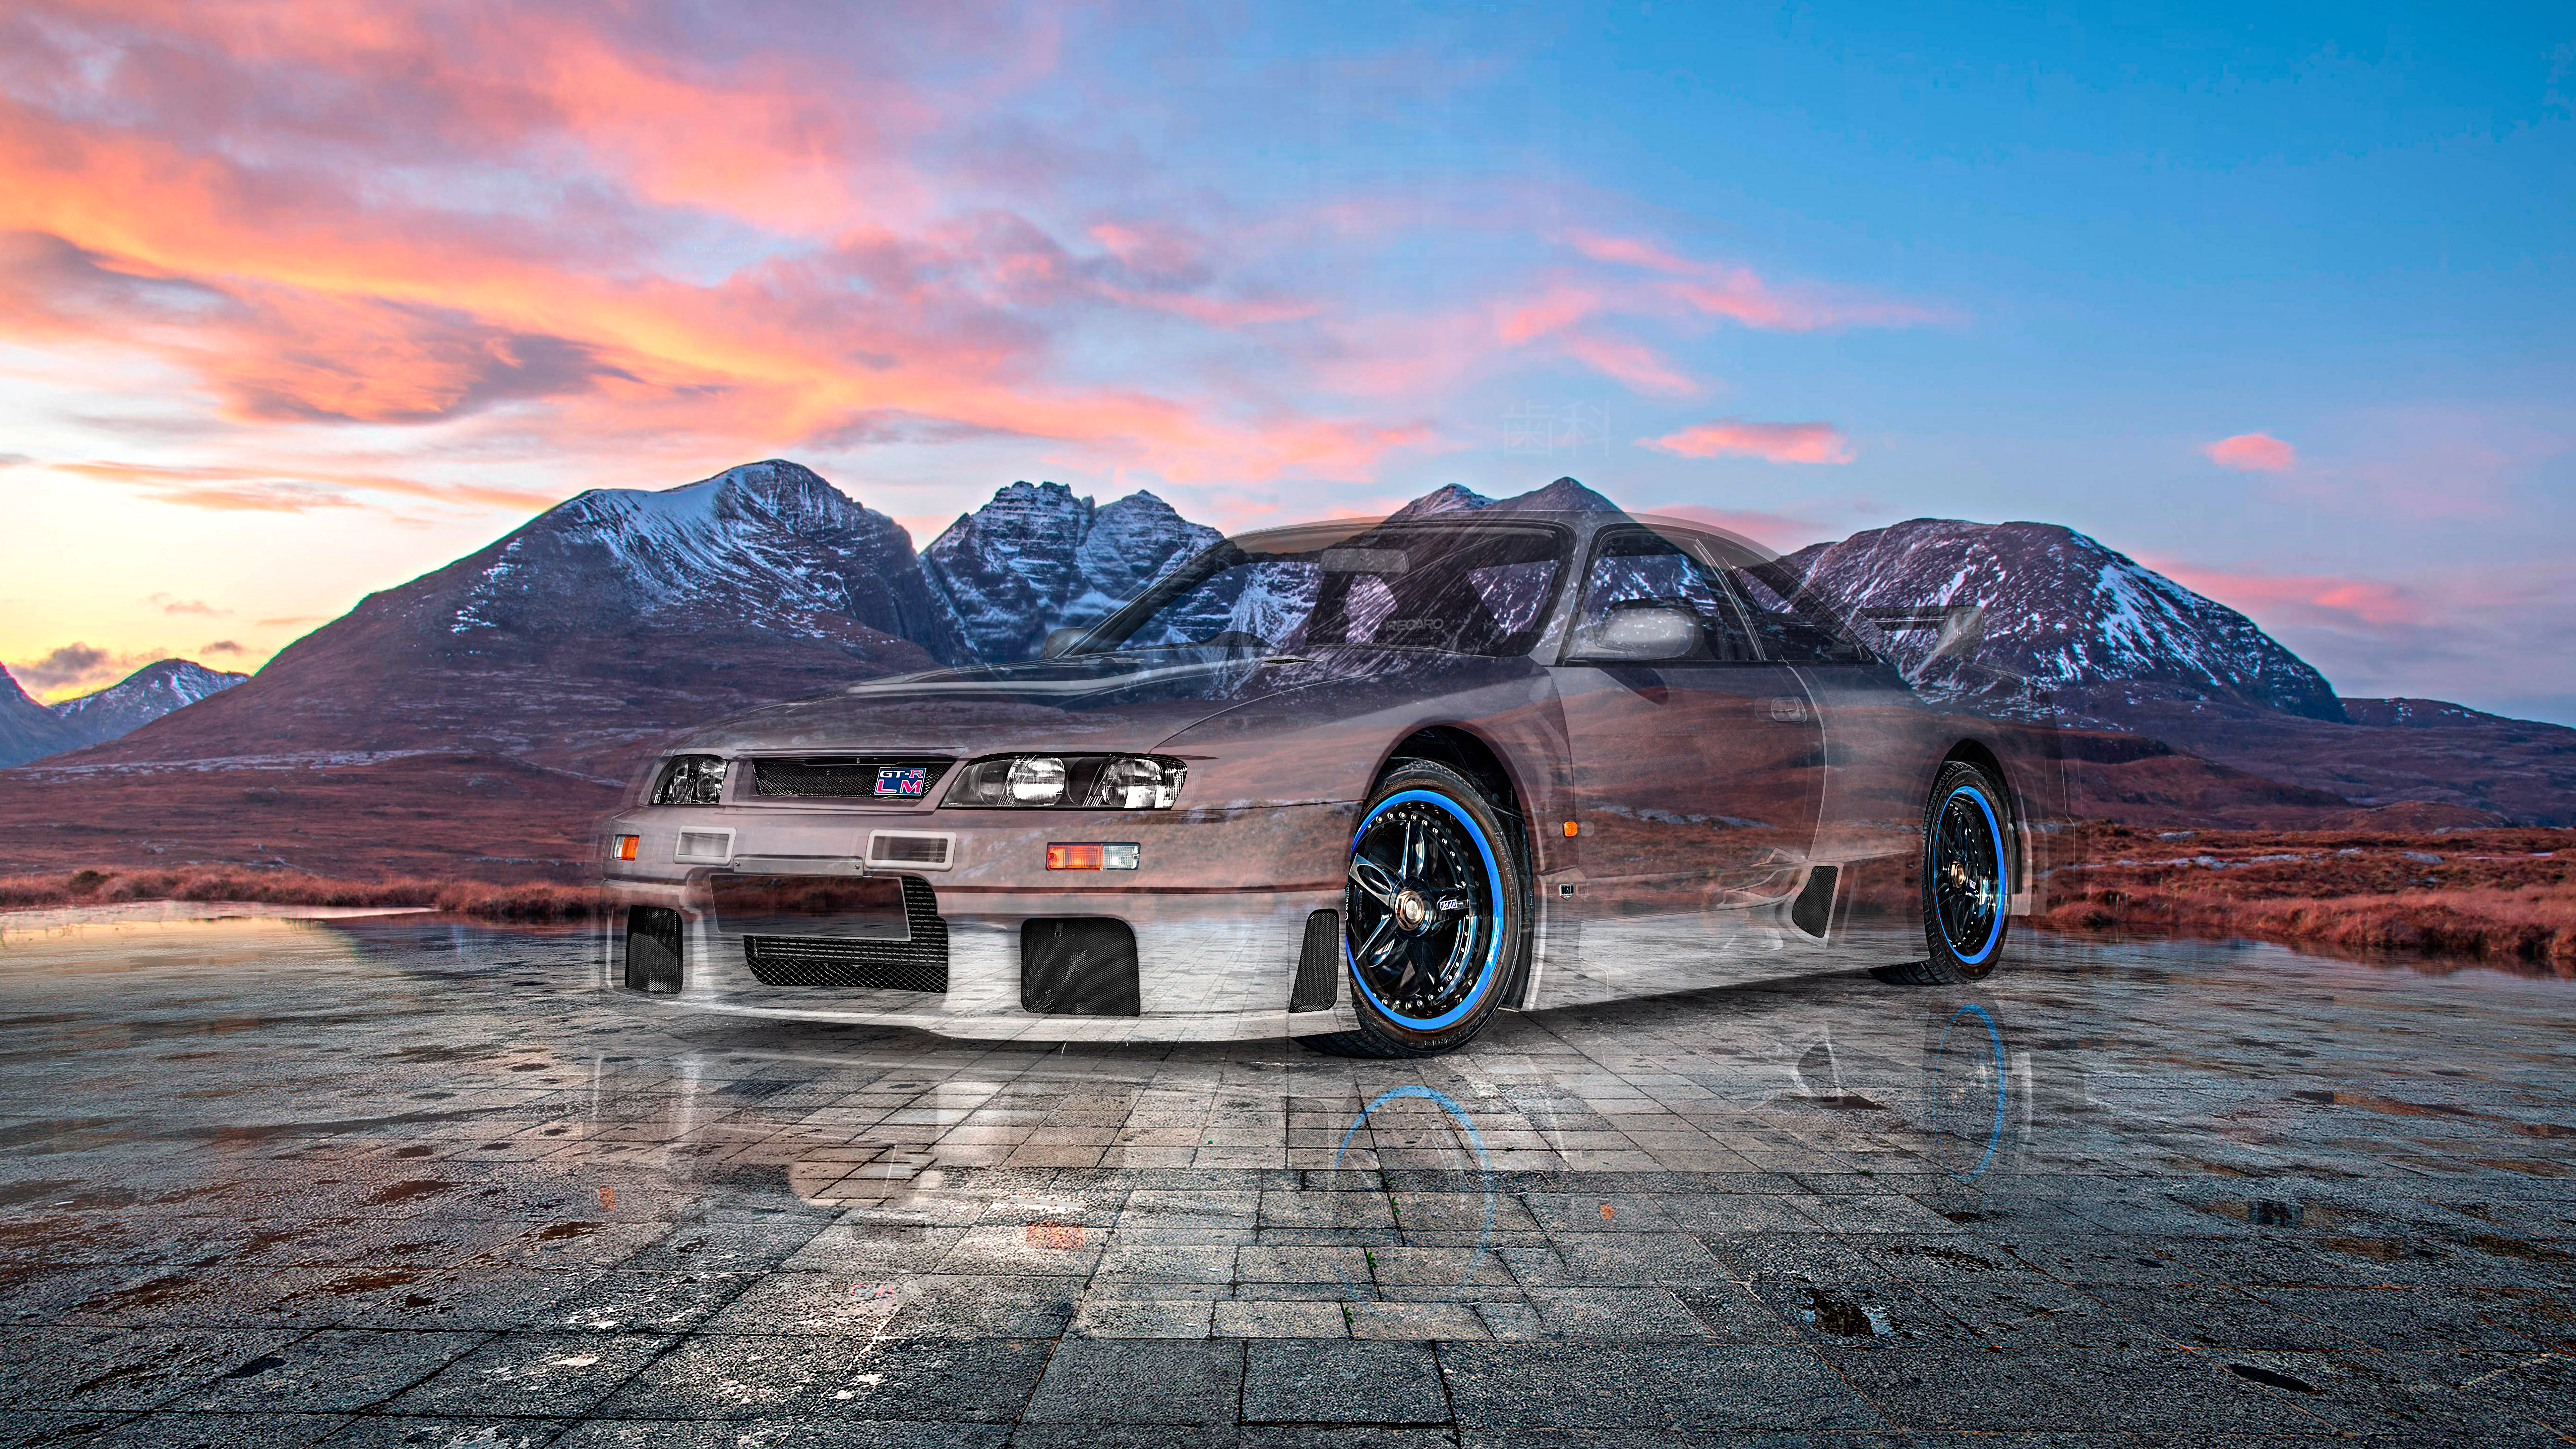 Nissan-Skyline-GTR-LM-Nismo-JDM-Tuning-Super-Crystal-Dental-Soul-An-Teallach-Scotland-Art-Car-2021-Multicolors-8K-Wallpapers-by-Tony-Kokhan-www.el-tony.com-image